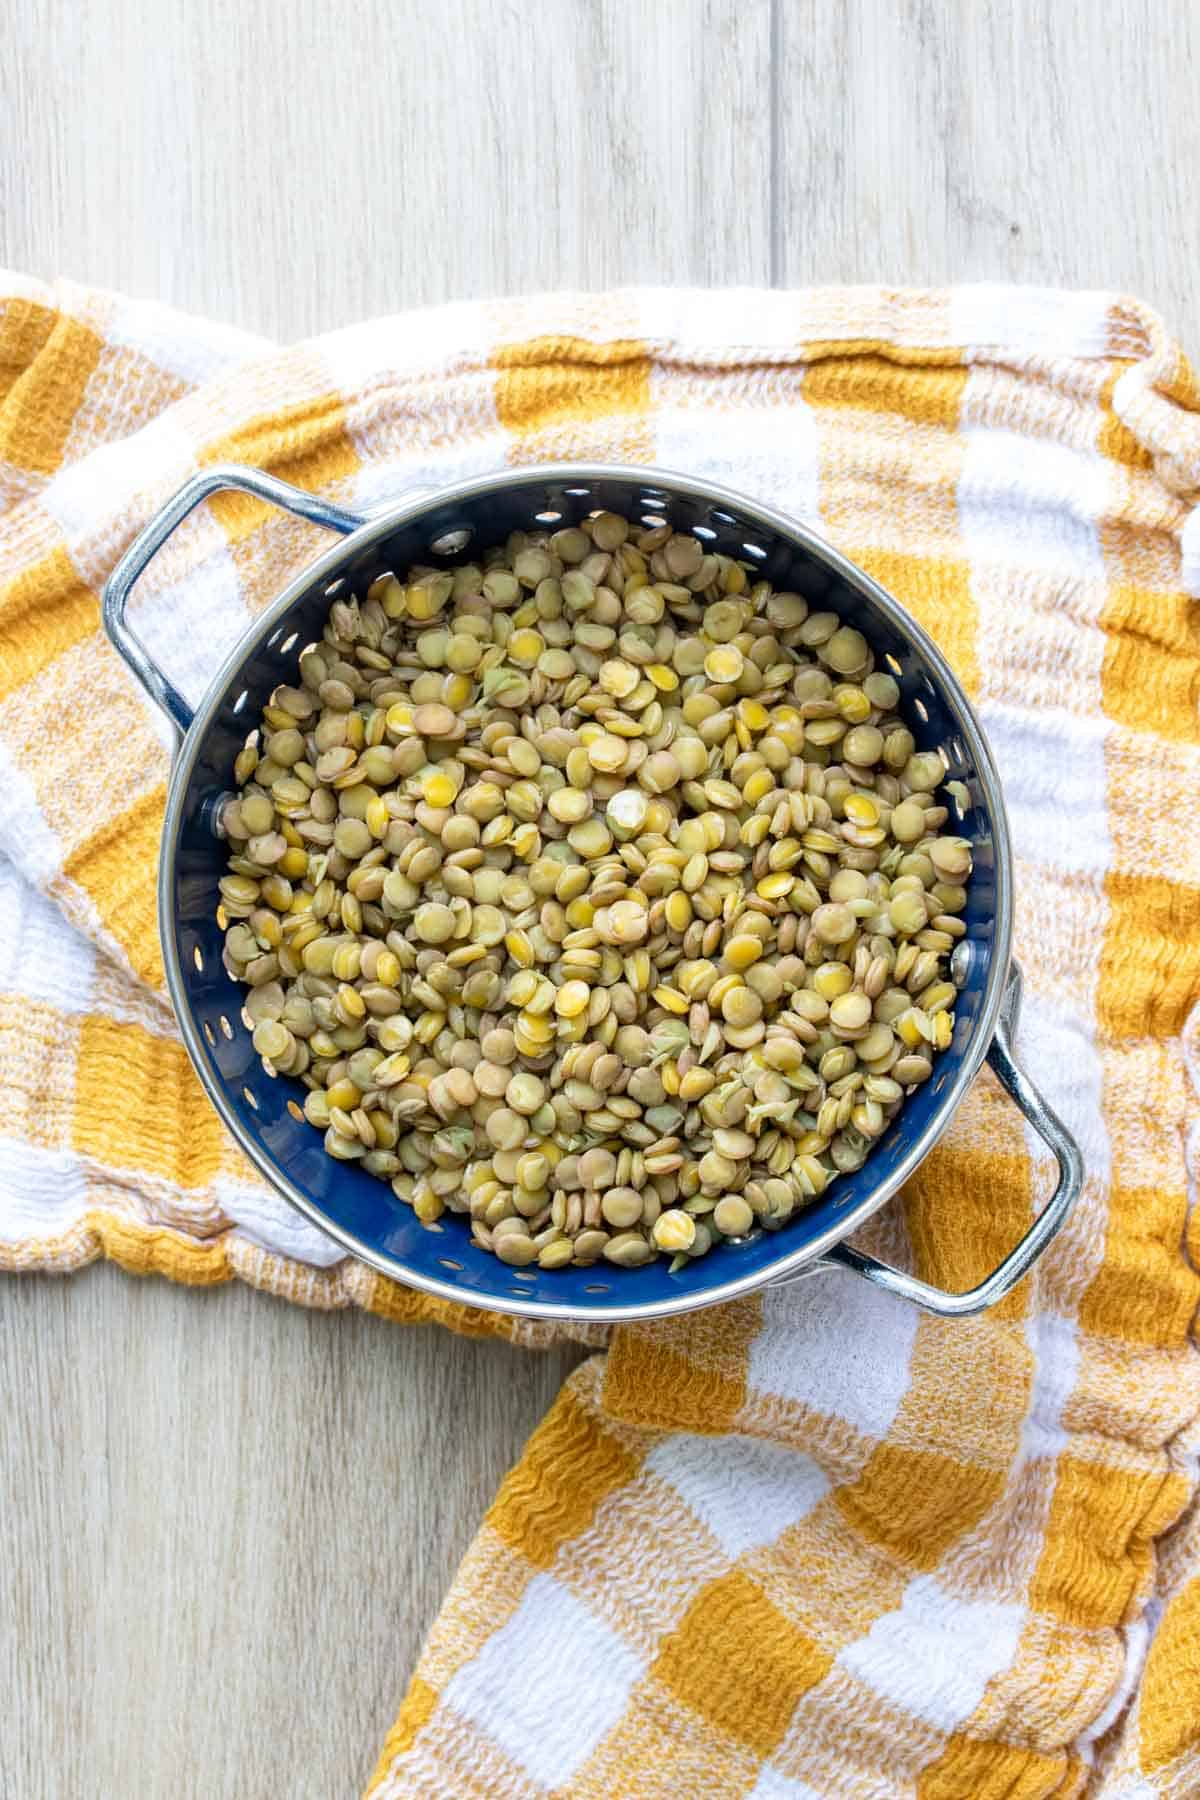 A blue colander filled with lentils on a yellow checkered towel